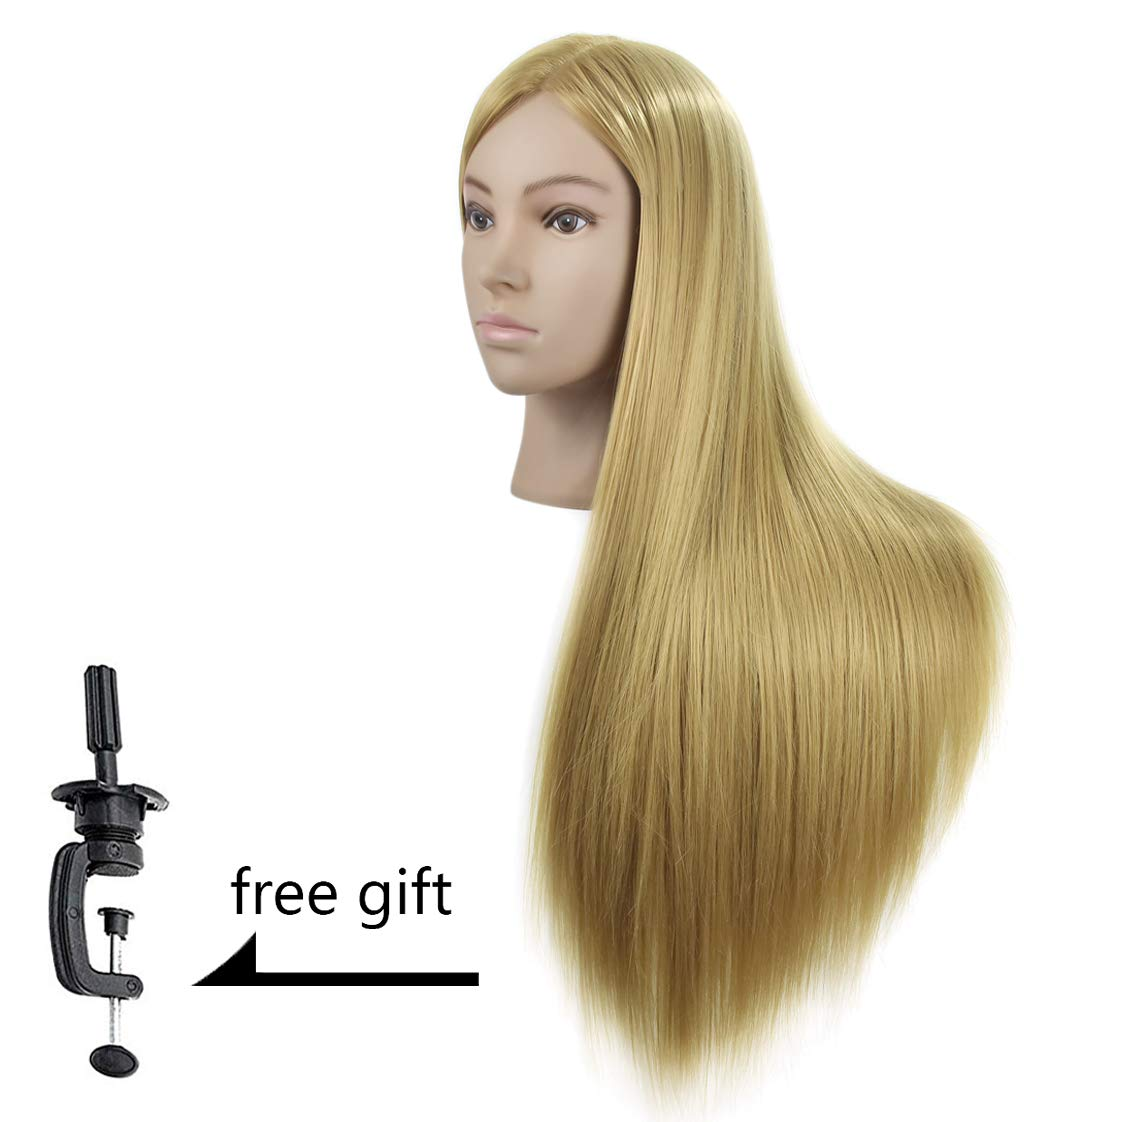 Wansi 26- 28 Training Head Hairdressing Mannequin Head Cosmetology Manikin Doll Head Synthetic Hair with Free Clamp